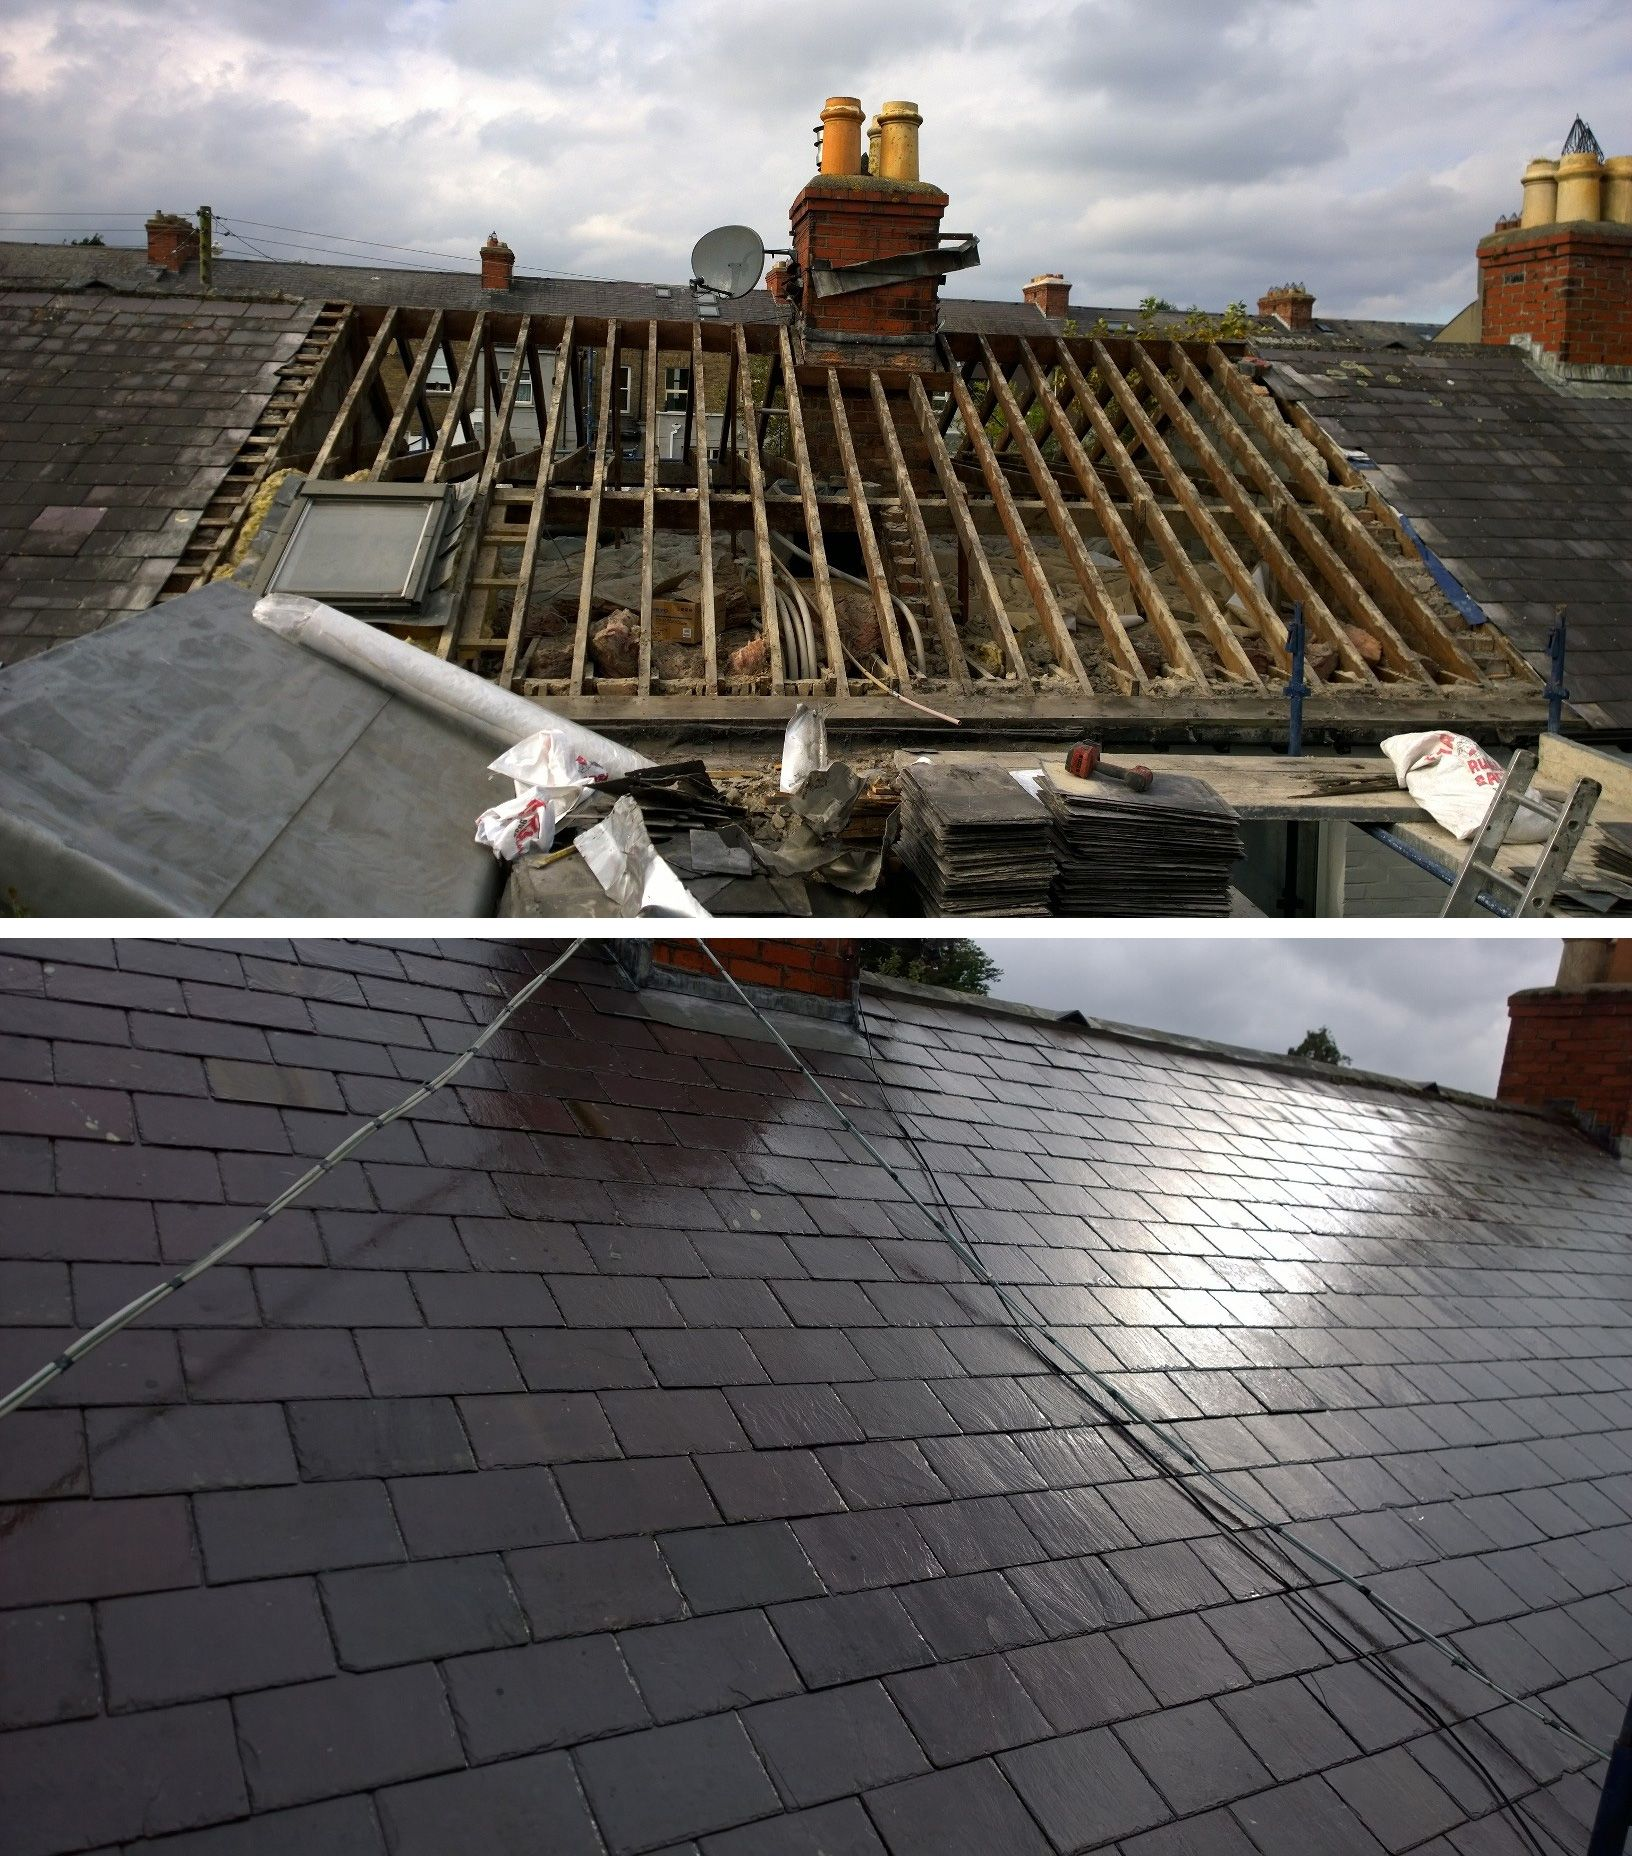 Specialists In Flat Roofing Systems Torch On Felt Single Ply Membrane Slates Tiles Repairs Insulation Valleys Fasci Roof Repair Roof Problems Roofing